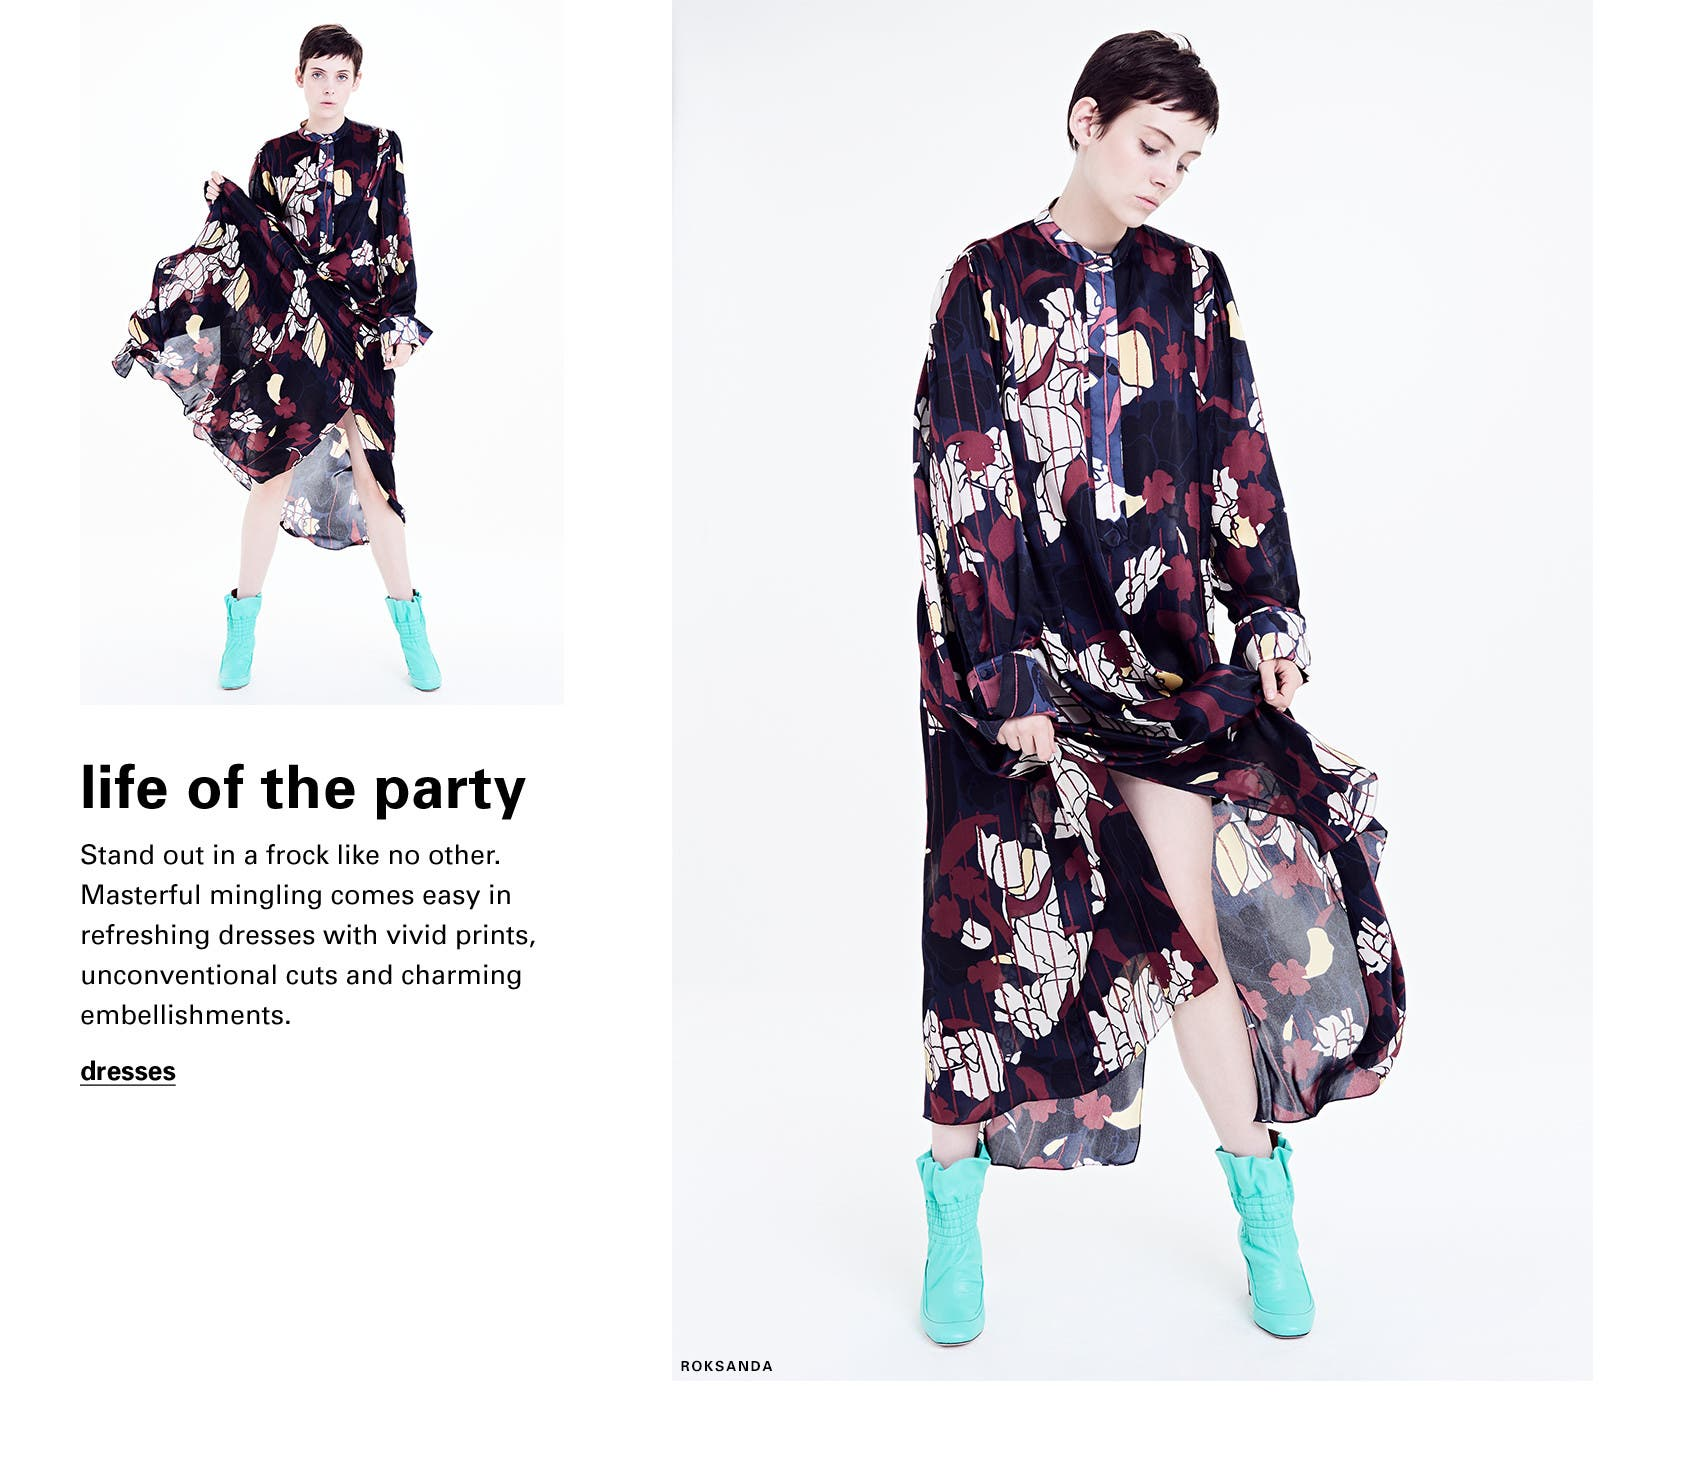 Be the life of the party: Anwyn floral silk dress from Roksanda.